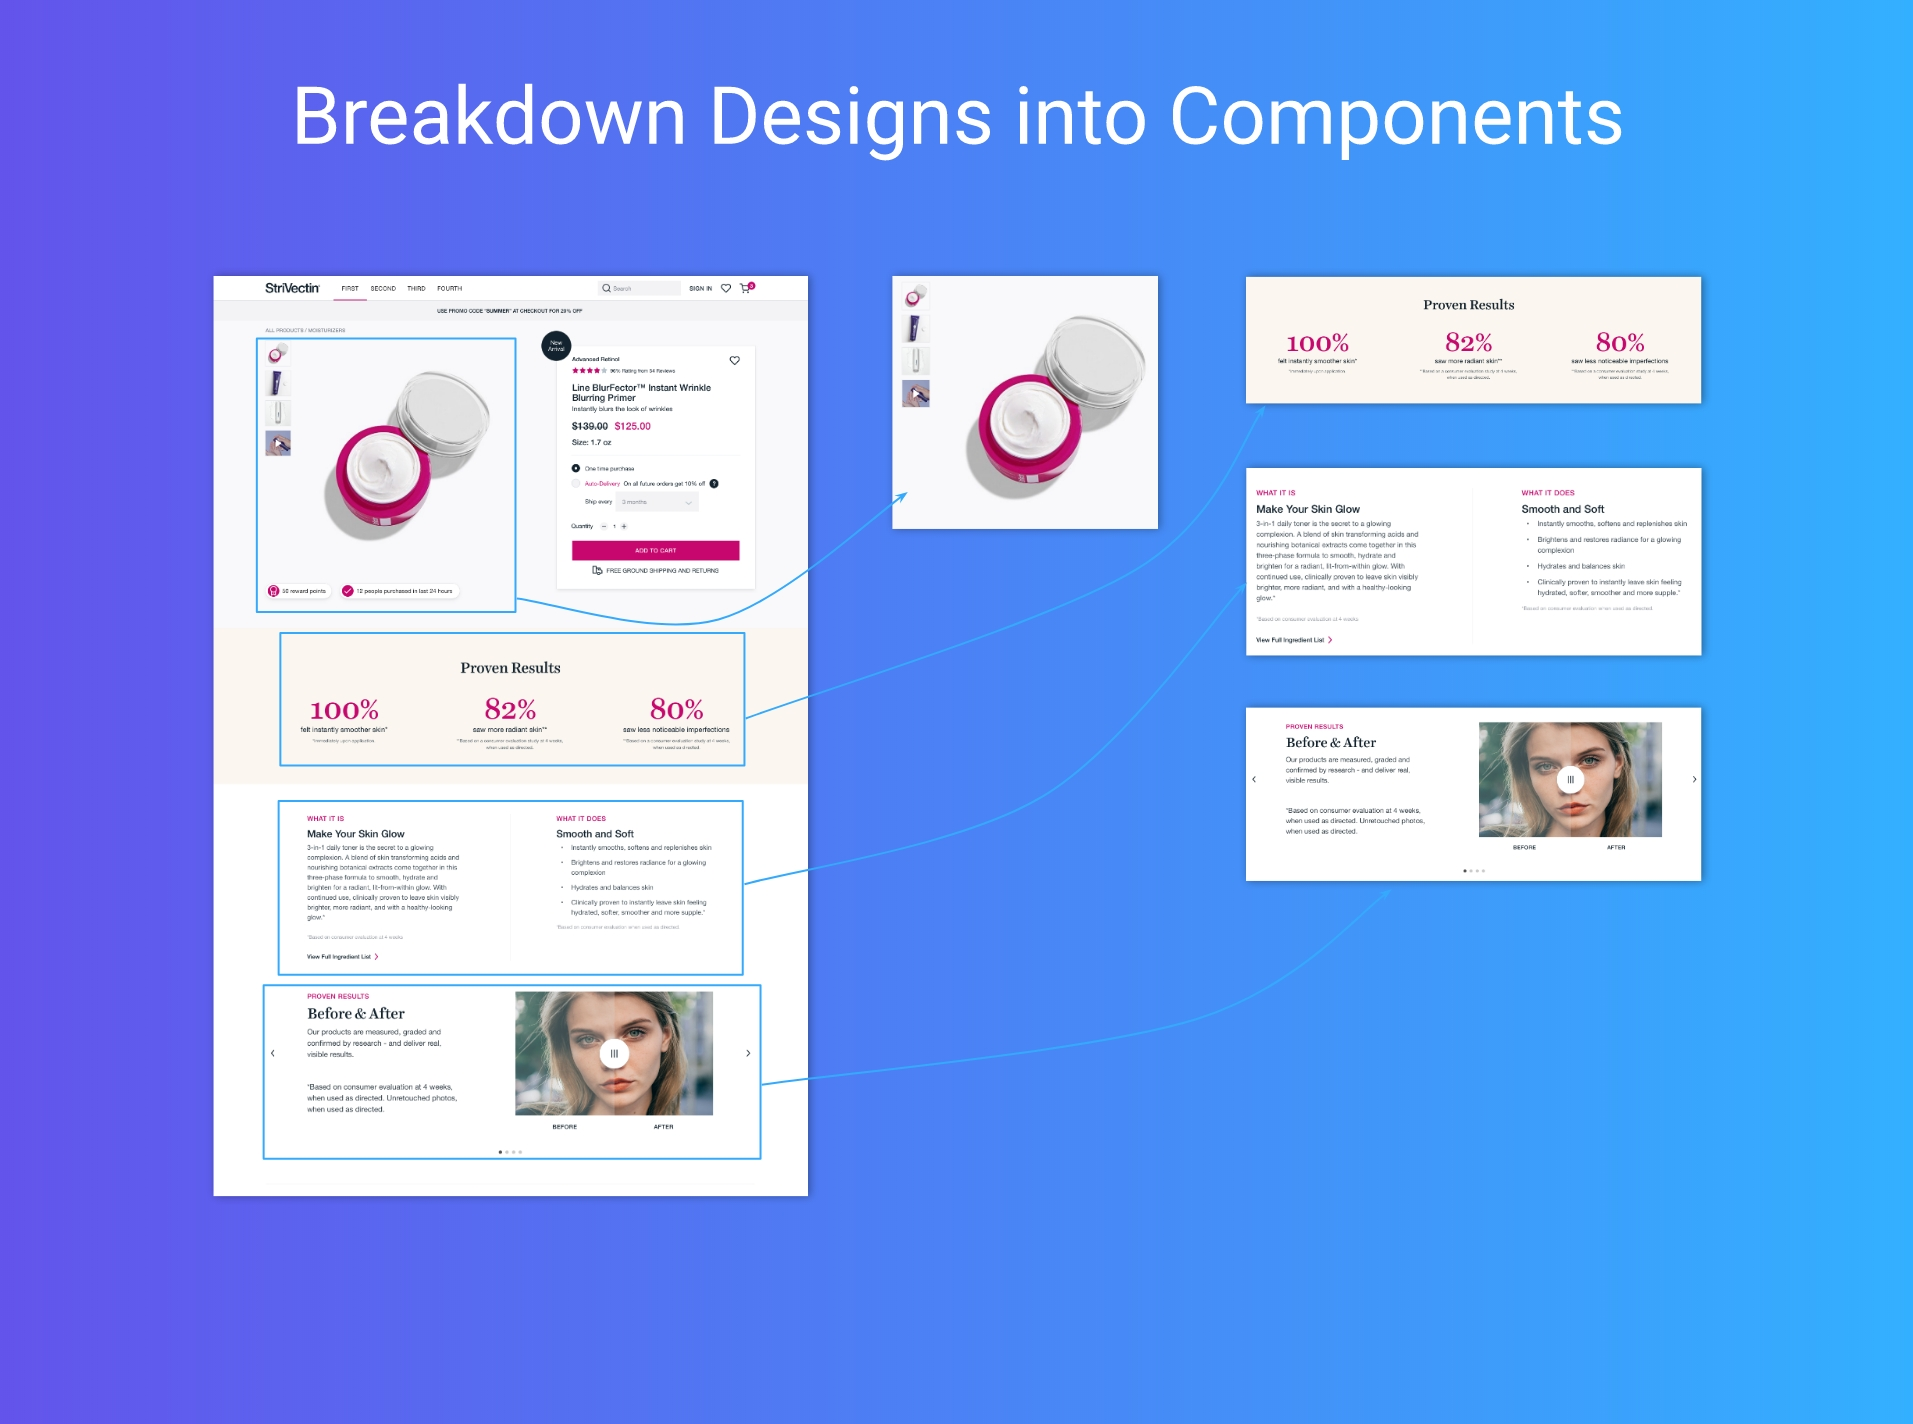 Breaking a page down into components